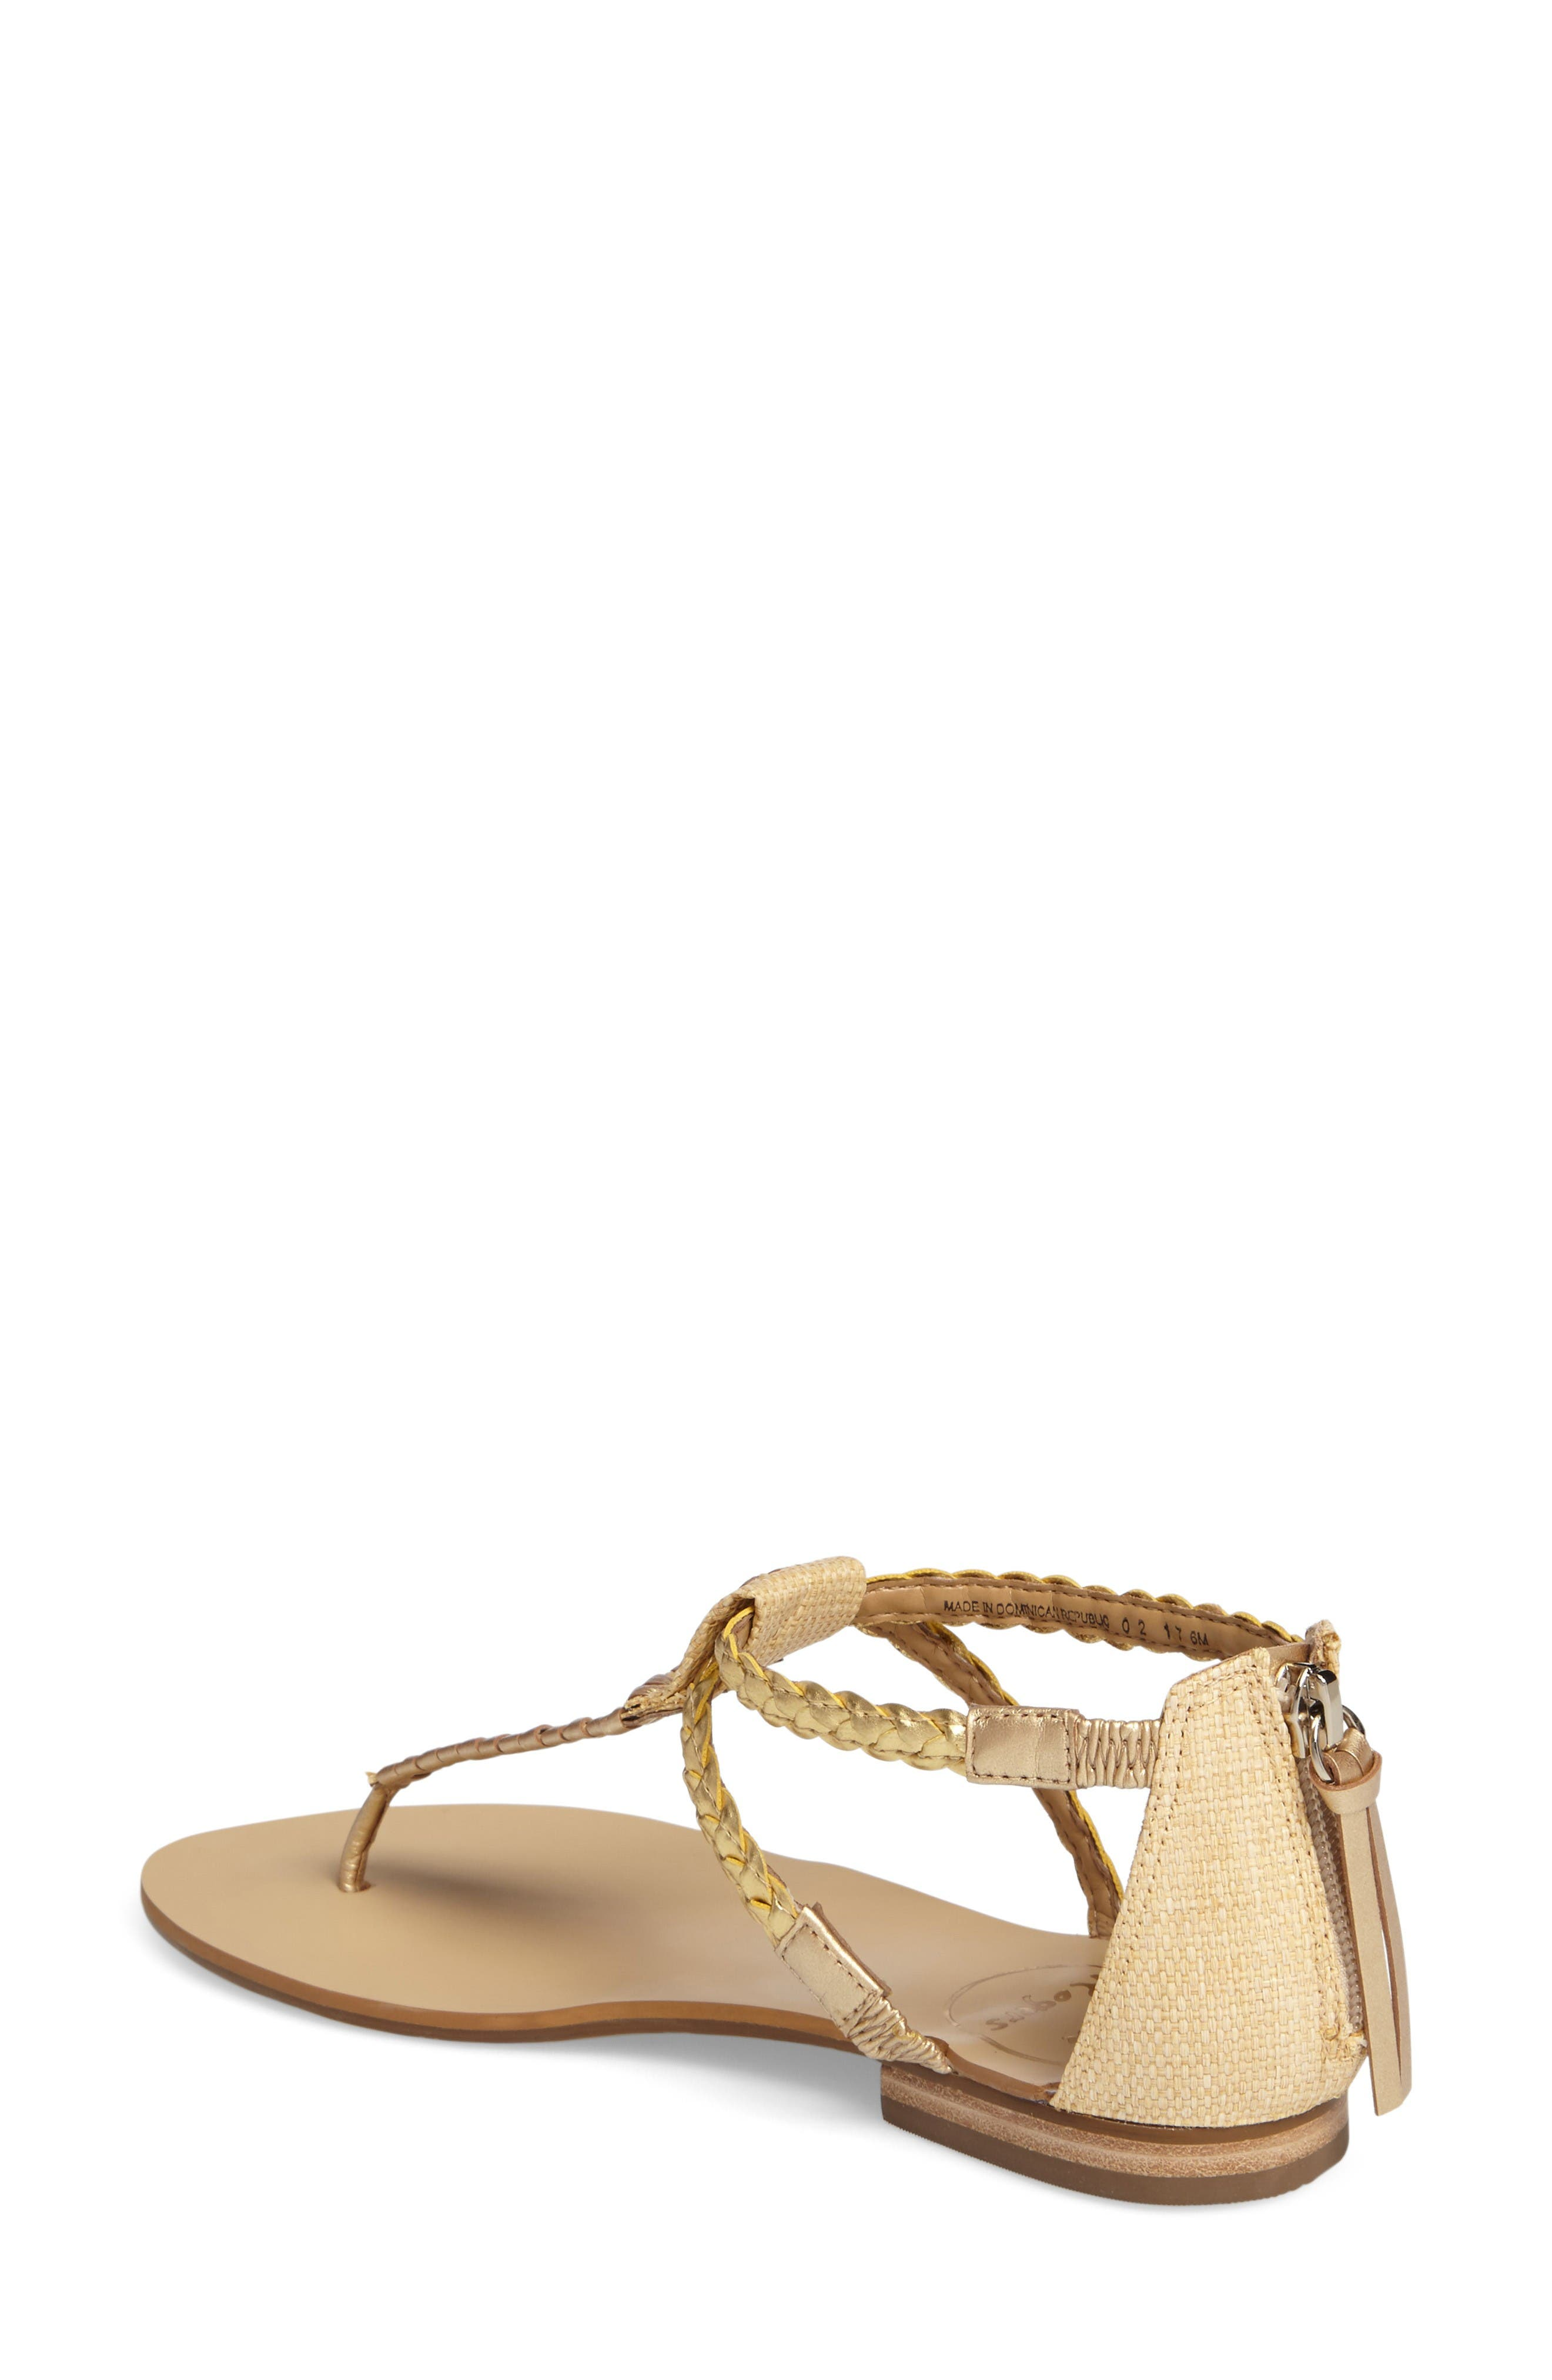 Jenna Sandal,                             Alternate thumbnail 2, color,                             Natural/ Gold Fabric